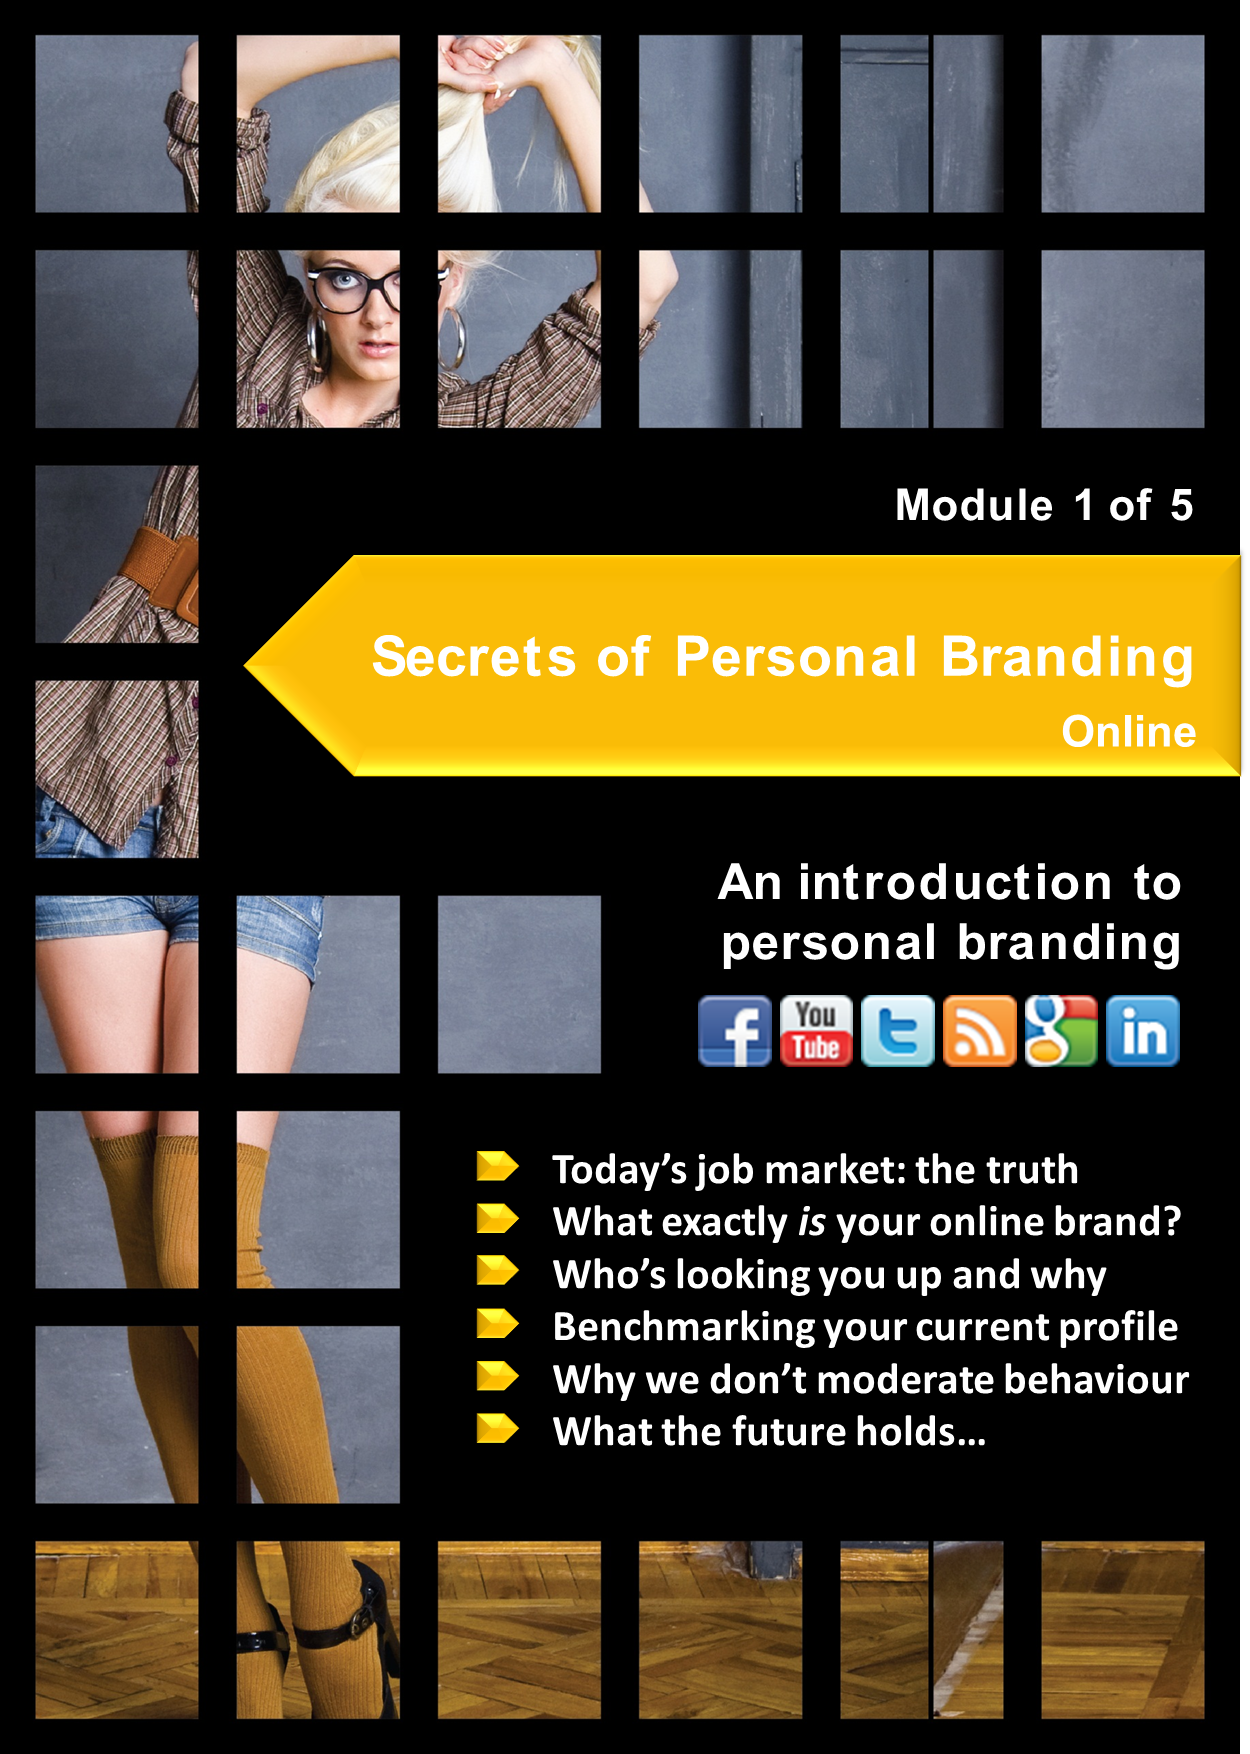 Secrets of Personal Branding Online course